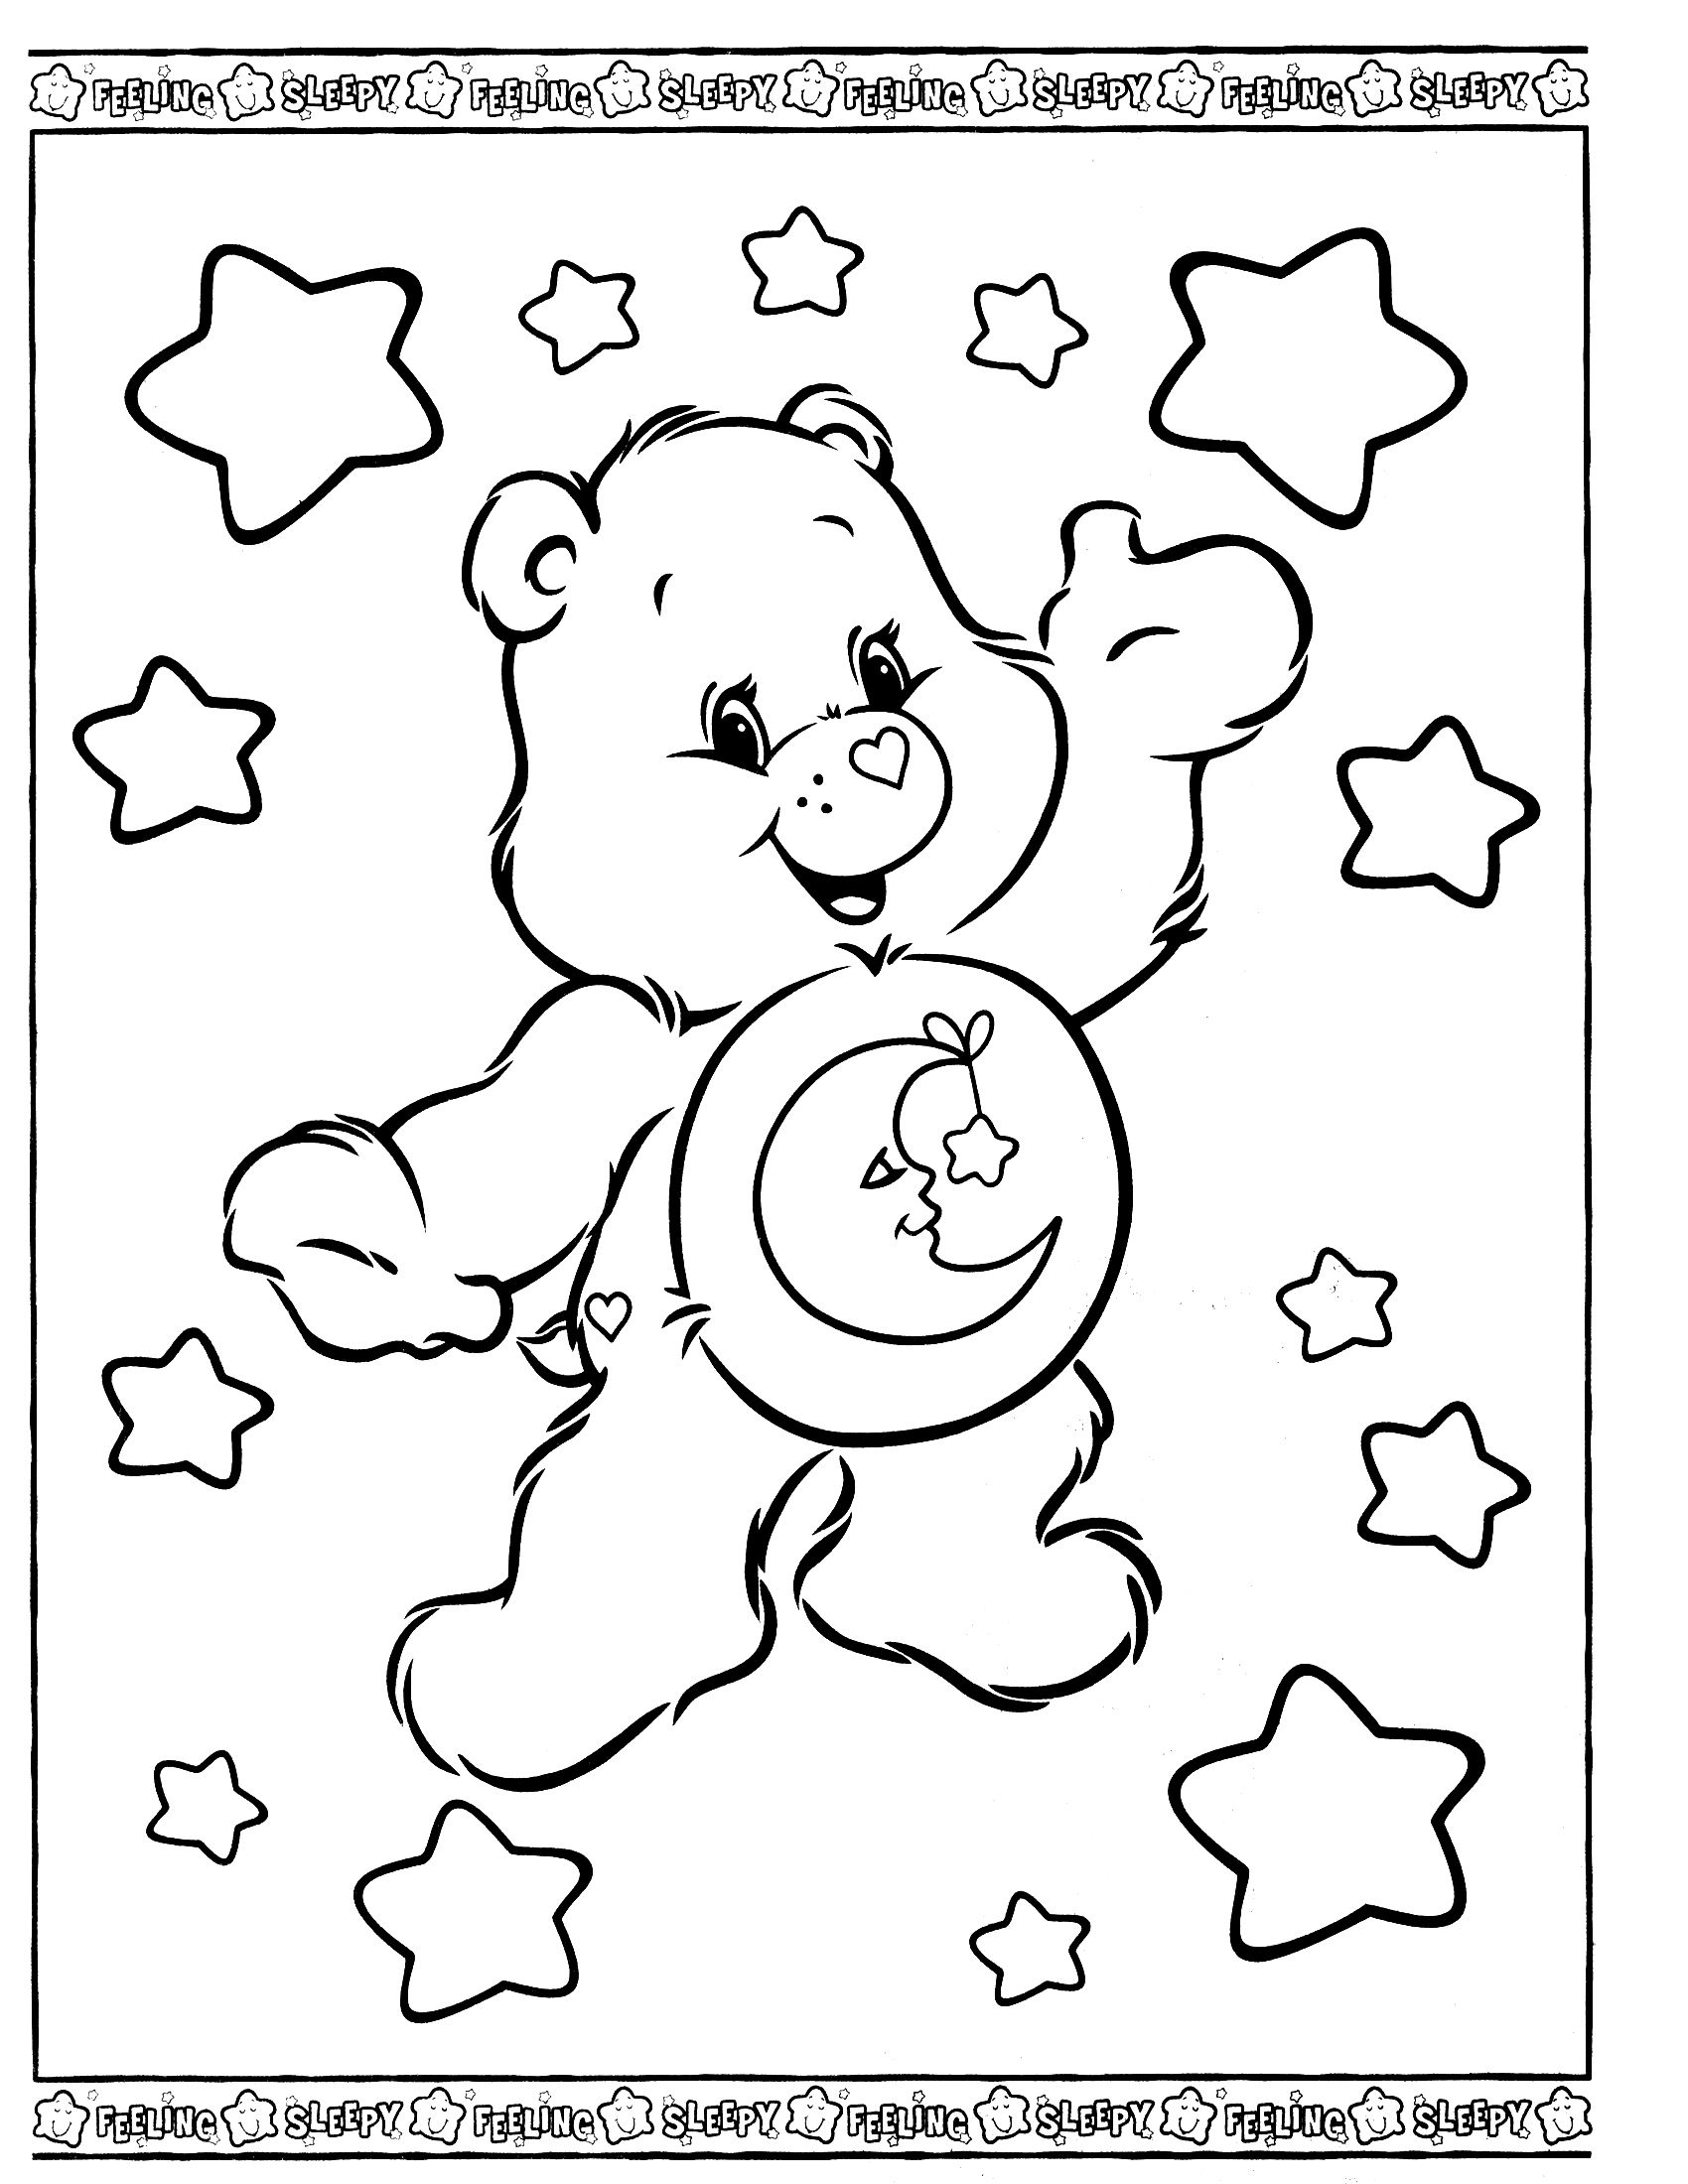 Best Care Bear Coloring Pages 2782 for Kids Tocoloring